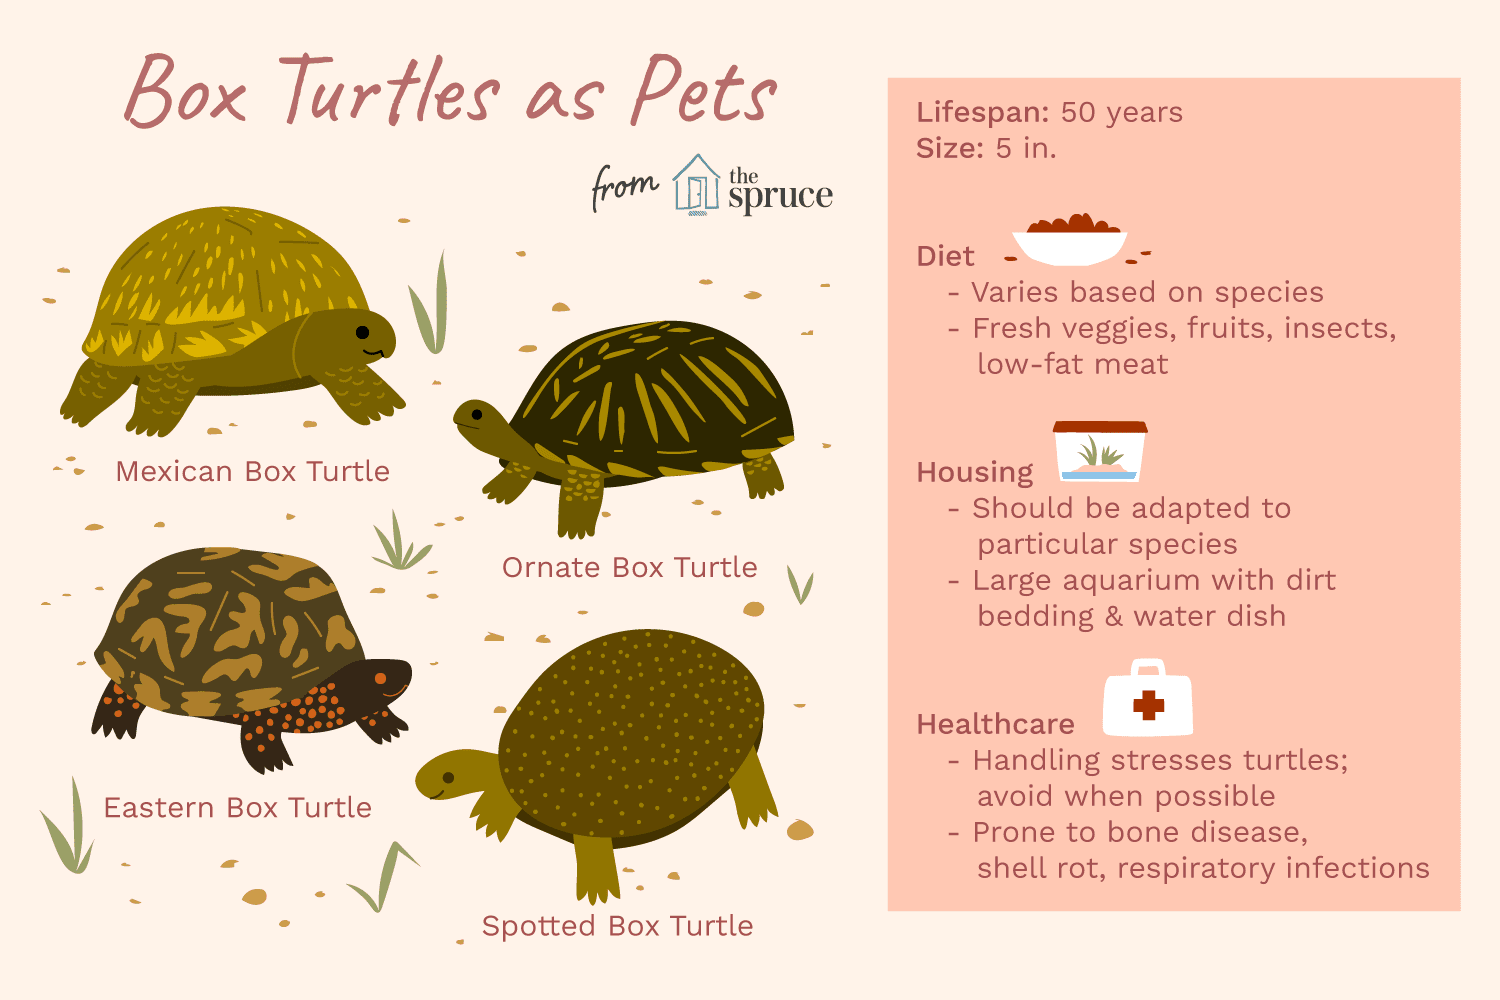 A Guide To Caring For North American Pet Box Turtles